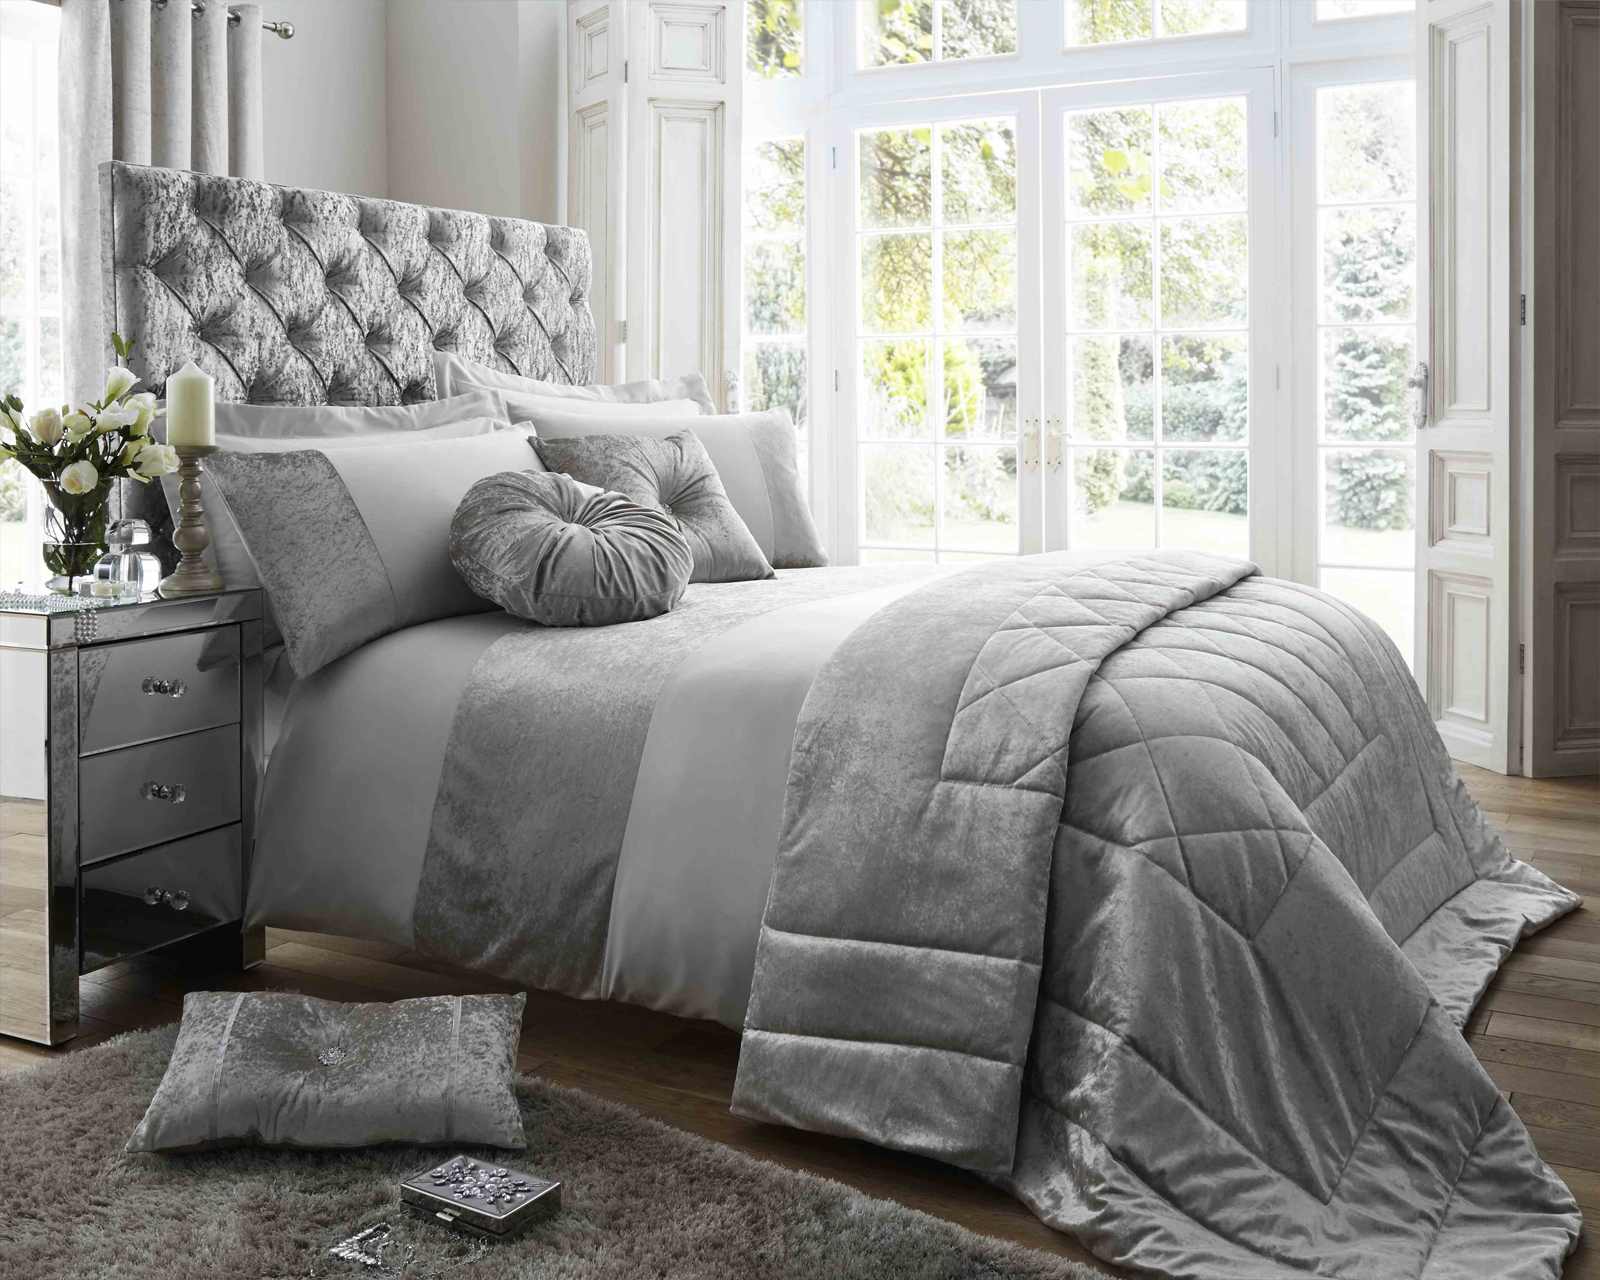 Duchess Matt Satin and Crushed Velvet Bedding Set in Silver